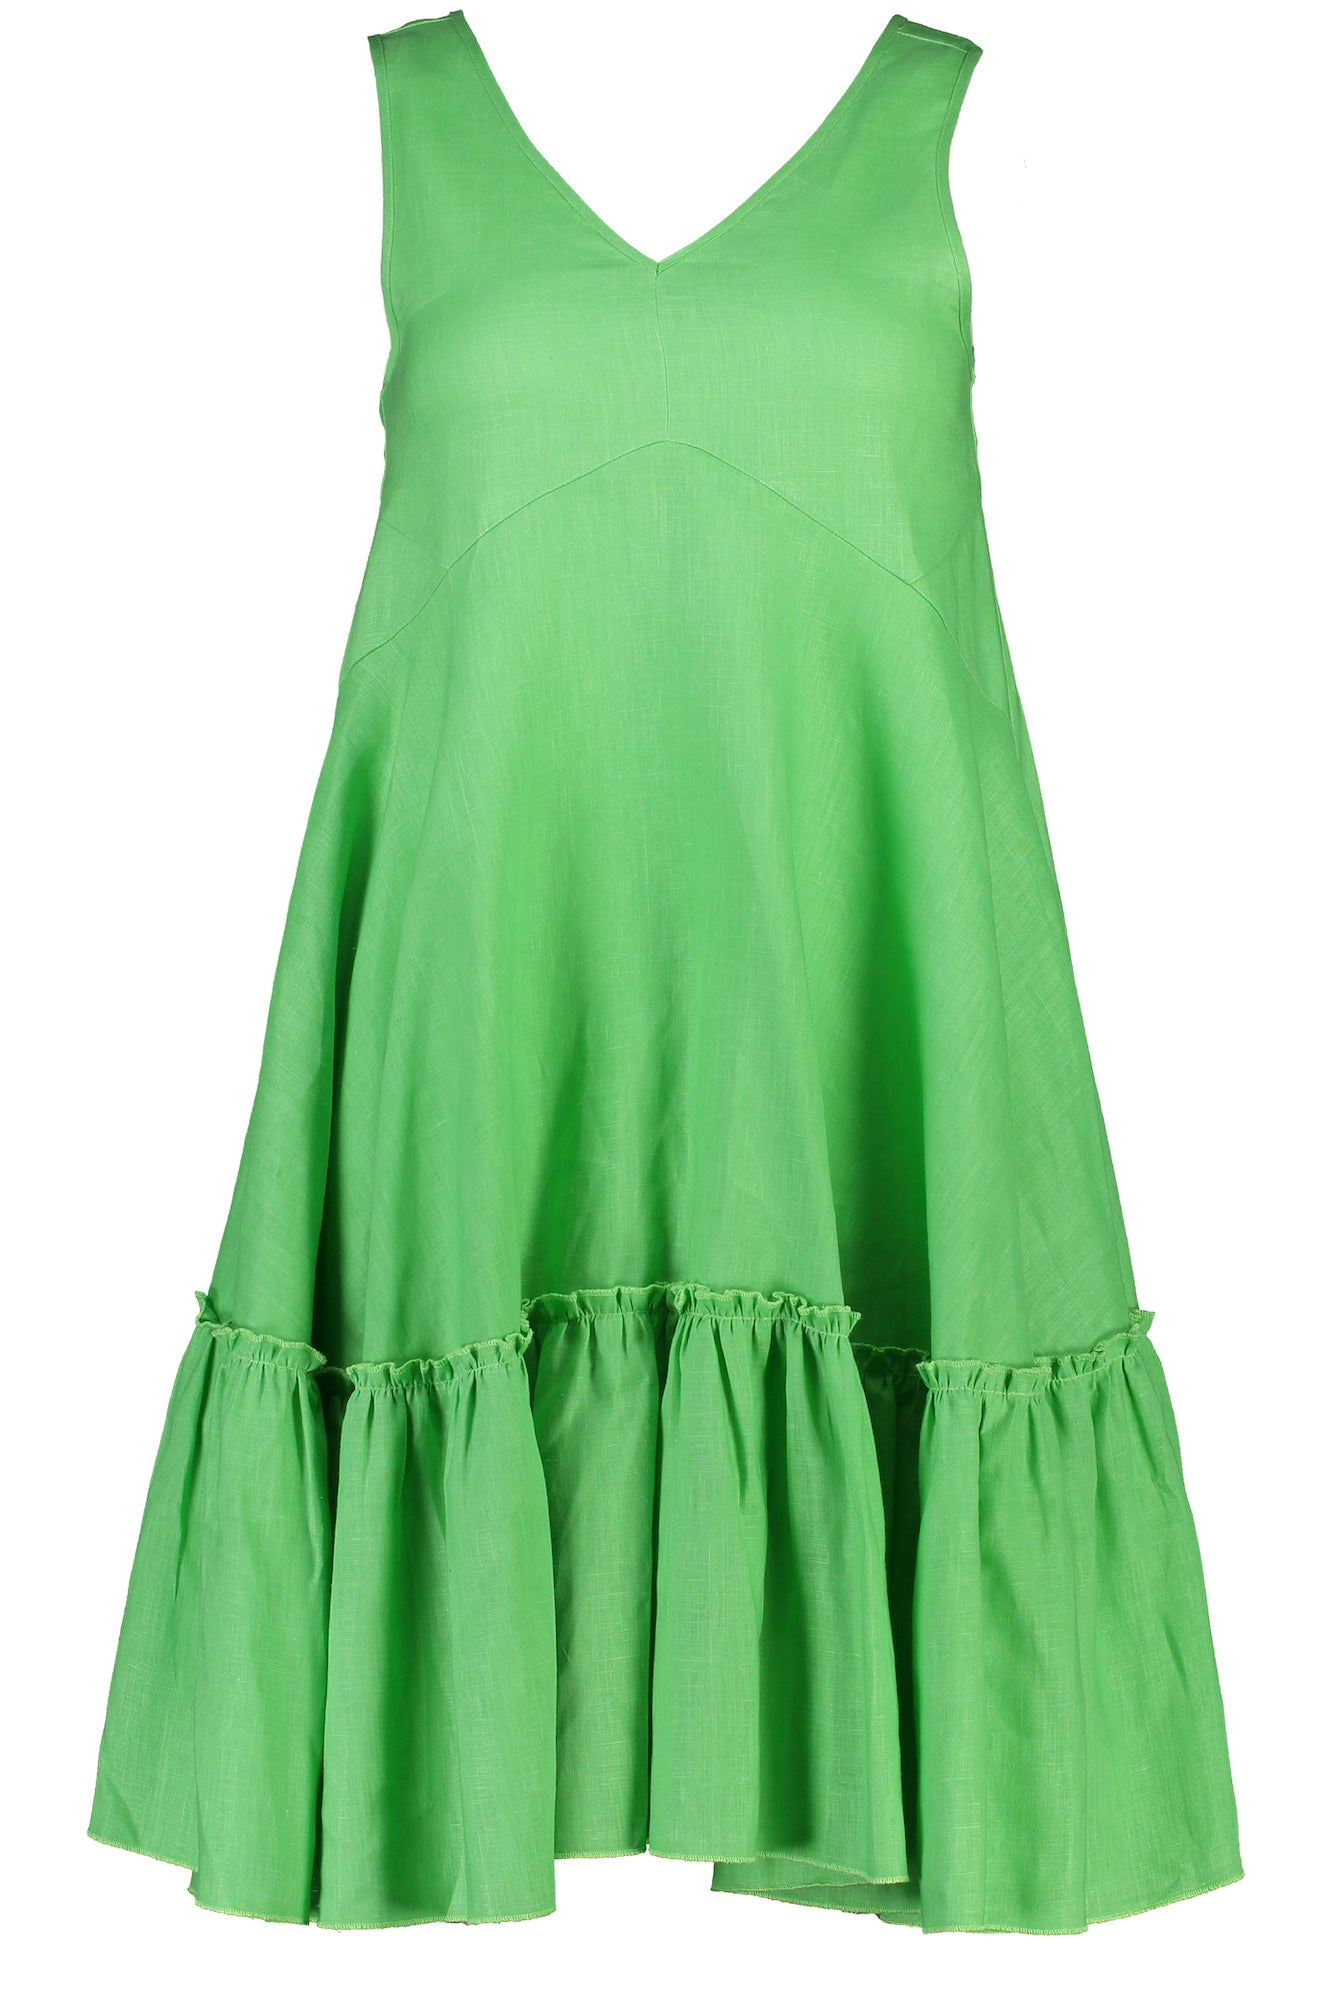 No Sweat Dress in Sweet Pea - hej hej